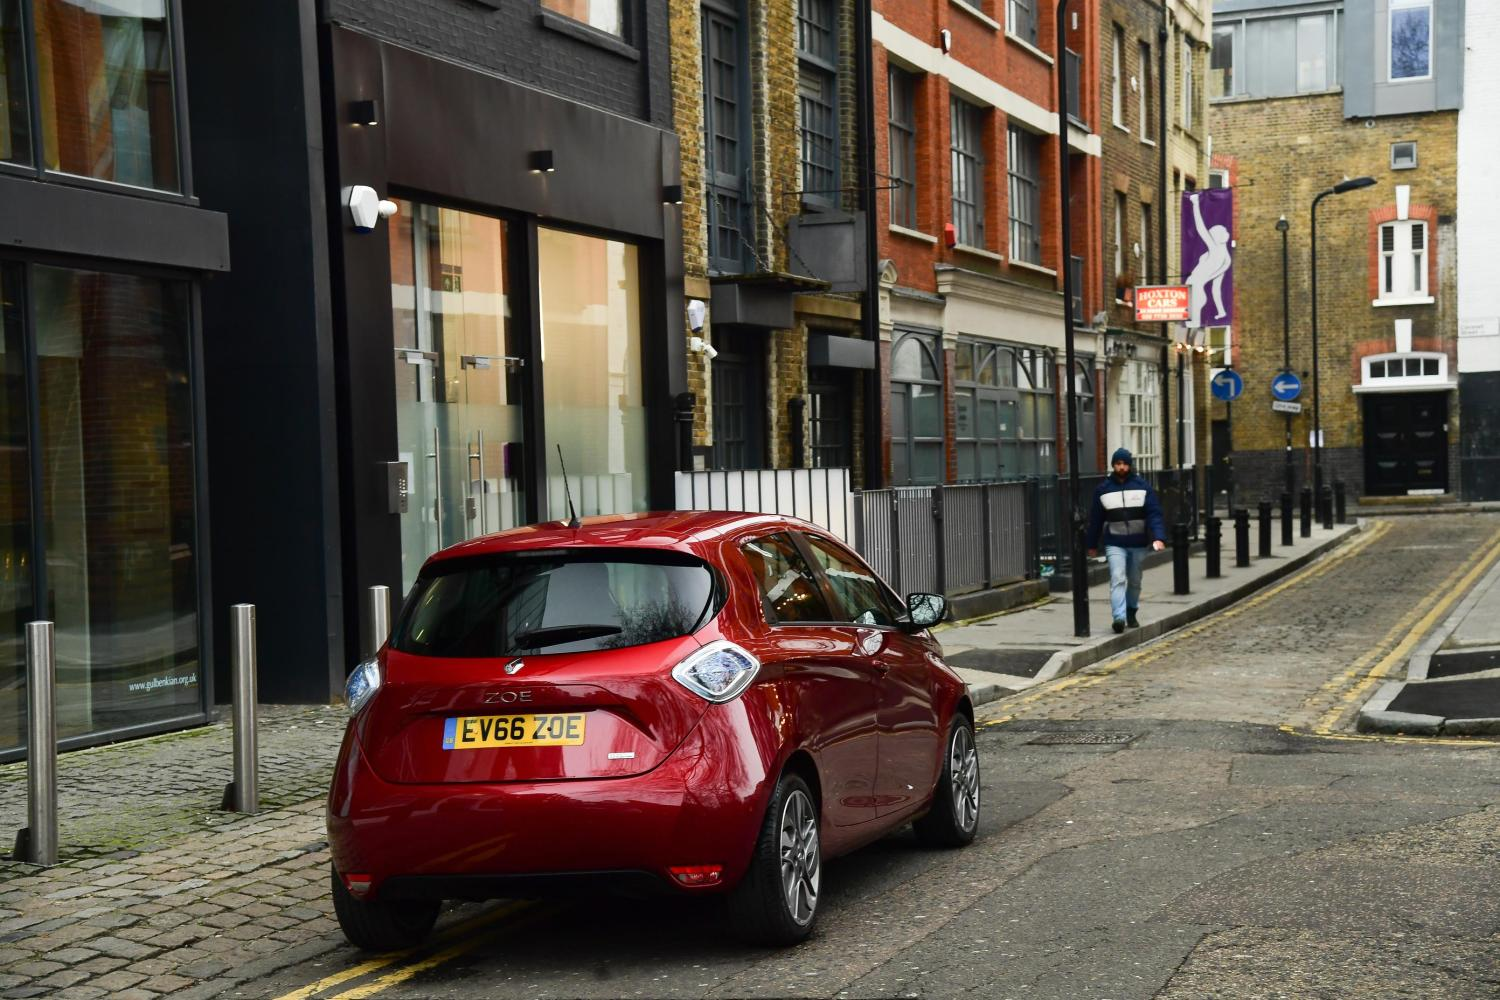 Fastest-selling used car is electric